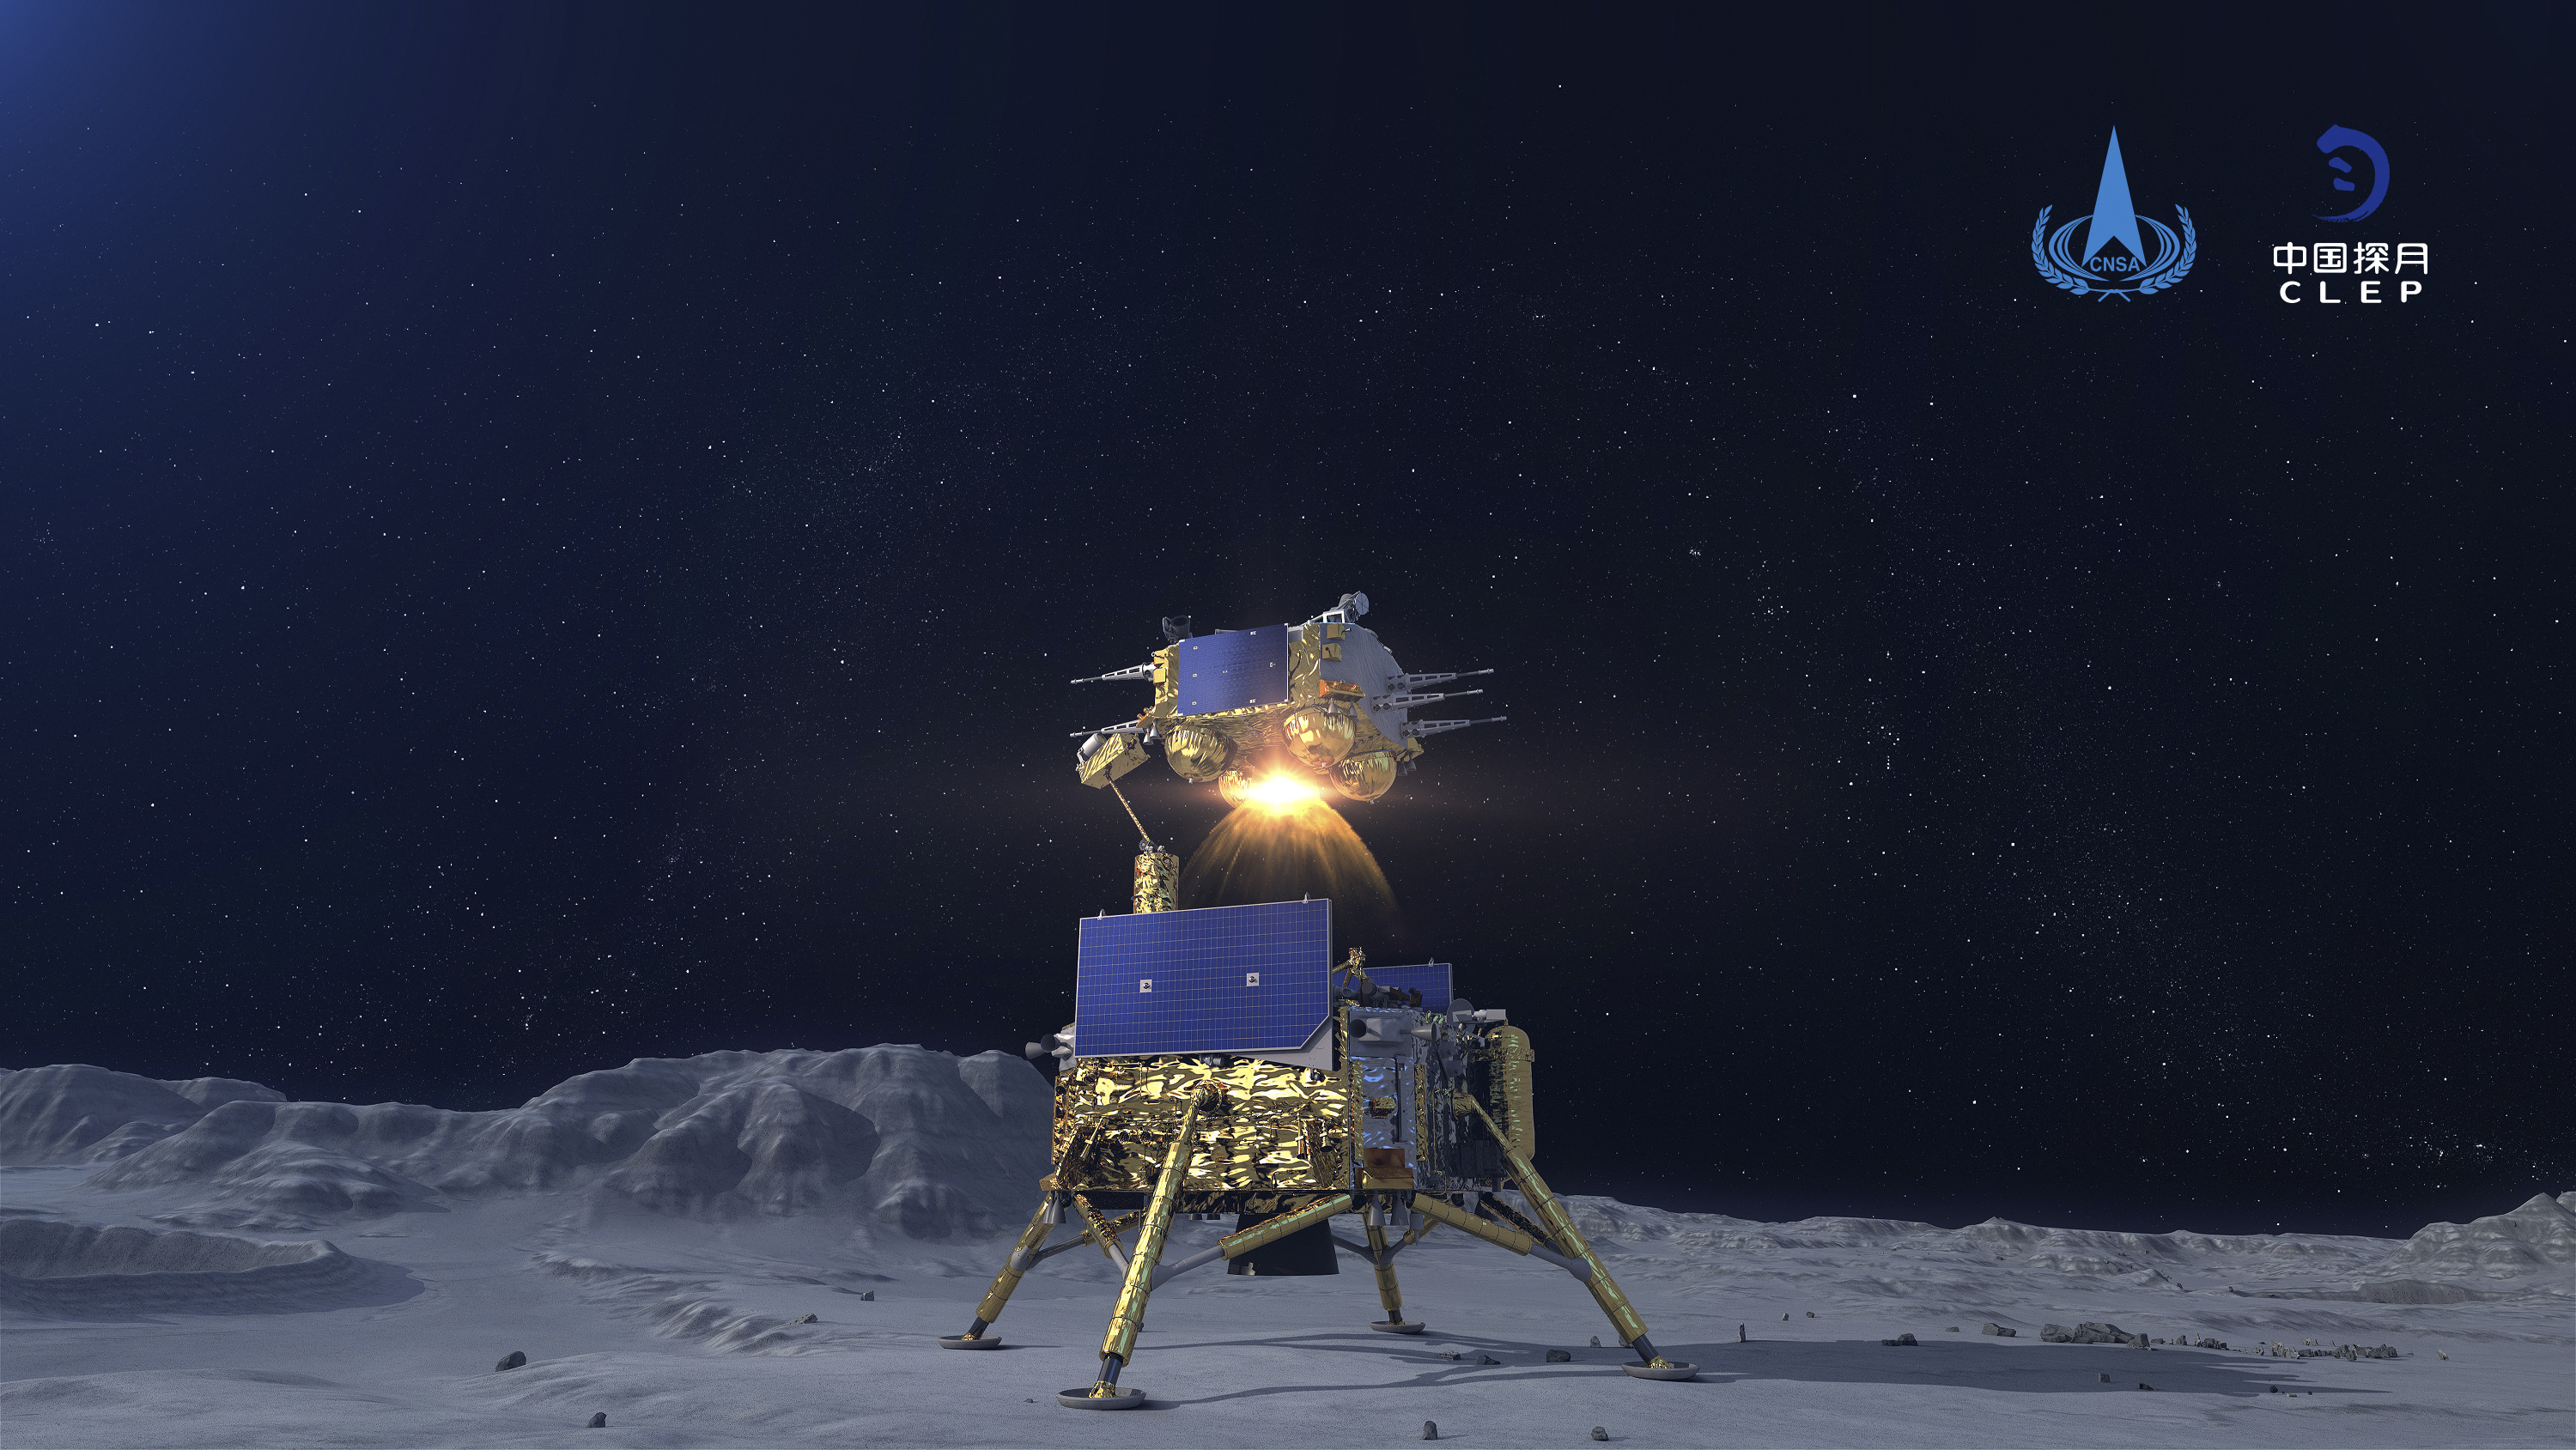 In this China National Space Administration (CNSA) photo released by Xinhua News Agency, a simulated image of the ascender of Chang'e-5 spacecraft blasting off from the lunar surface at the Beijing Aerospace Control Center (BACC) in Beijing on Dec. 3, 2020. The Chinese lunar probe lifted off from the moon Thursday night with a cargo of lunar samples on the first stage of its return to Earth, state media reported.